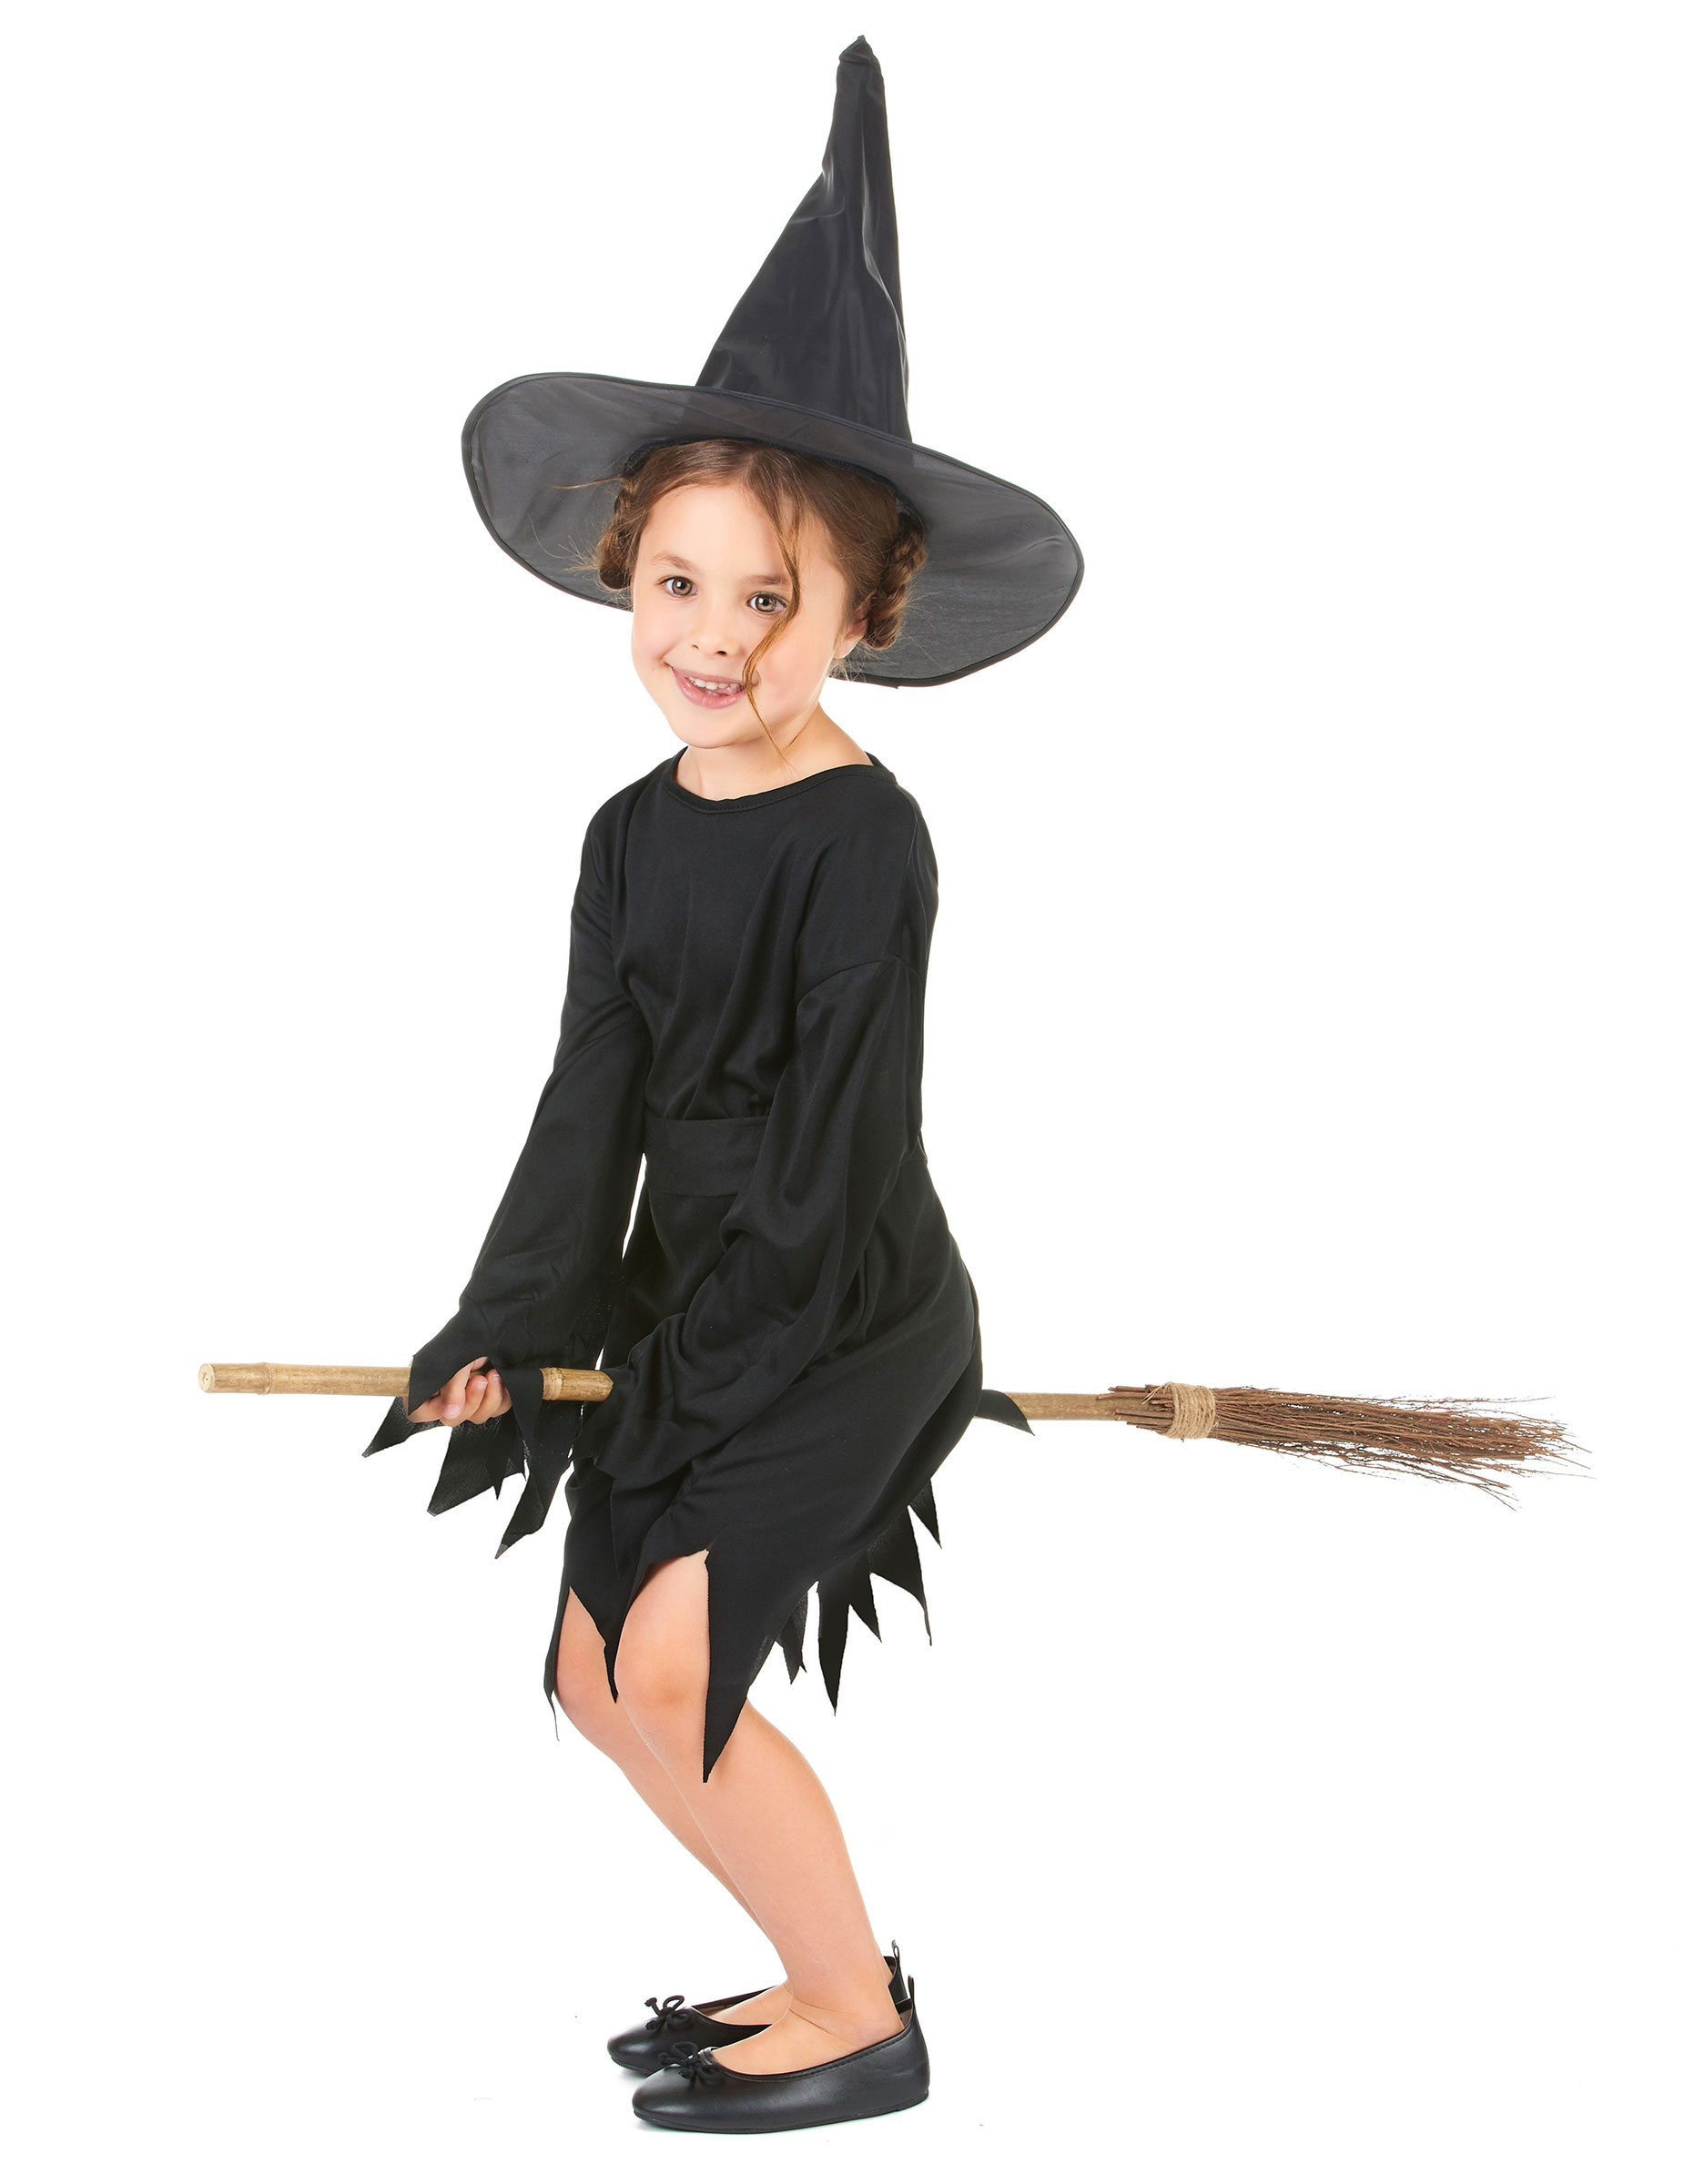 D guisement sorci re fille halloween achat de - Deguisement halloween enfant fille ...